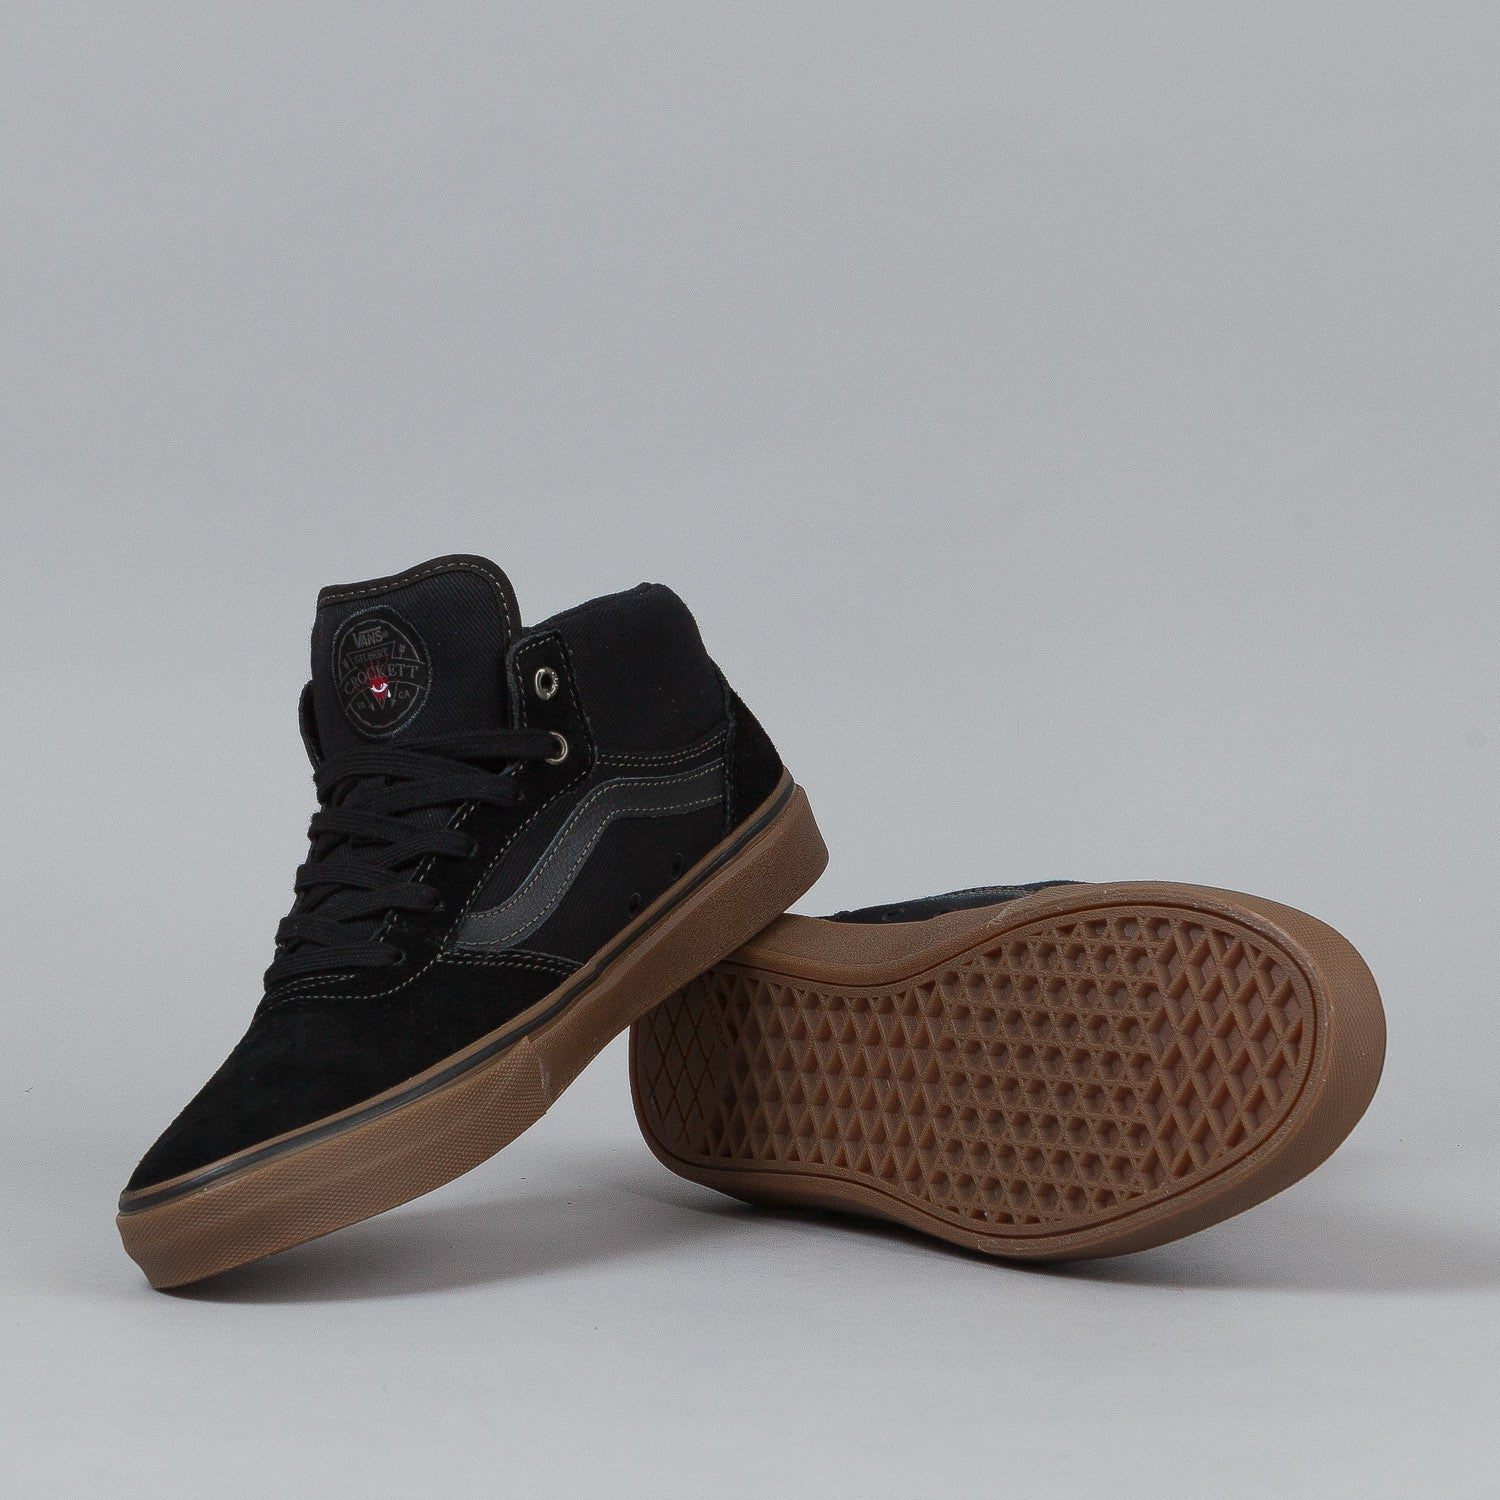 Vans Gilbert Crockett Shoes - Black / Gum